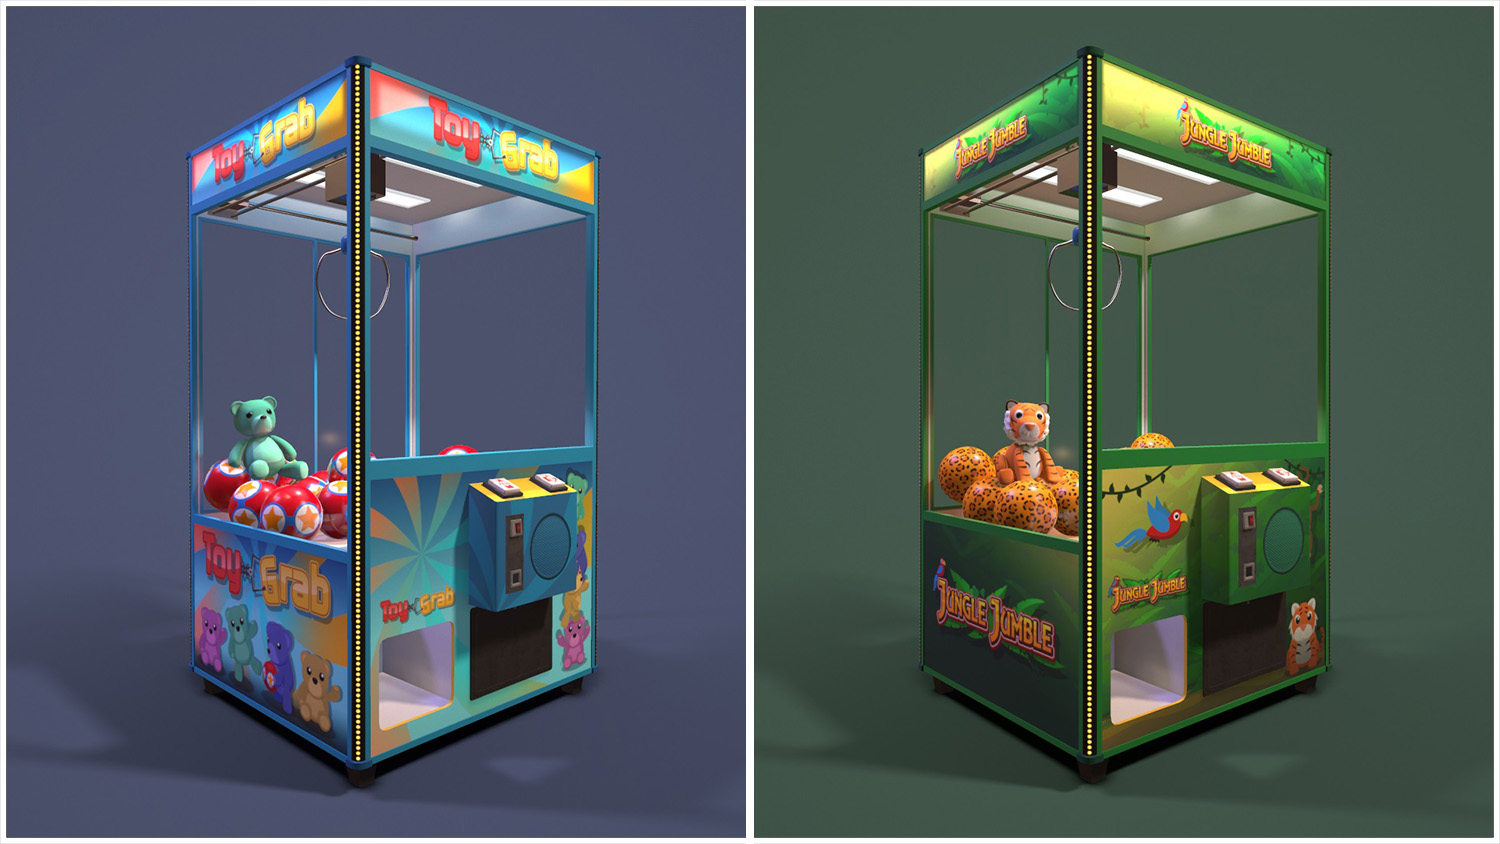 render of both claw machines